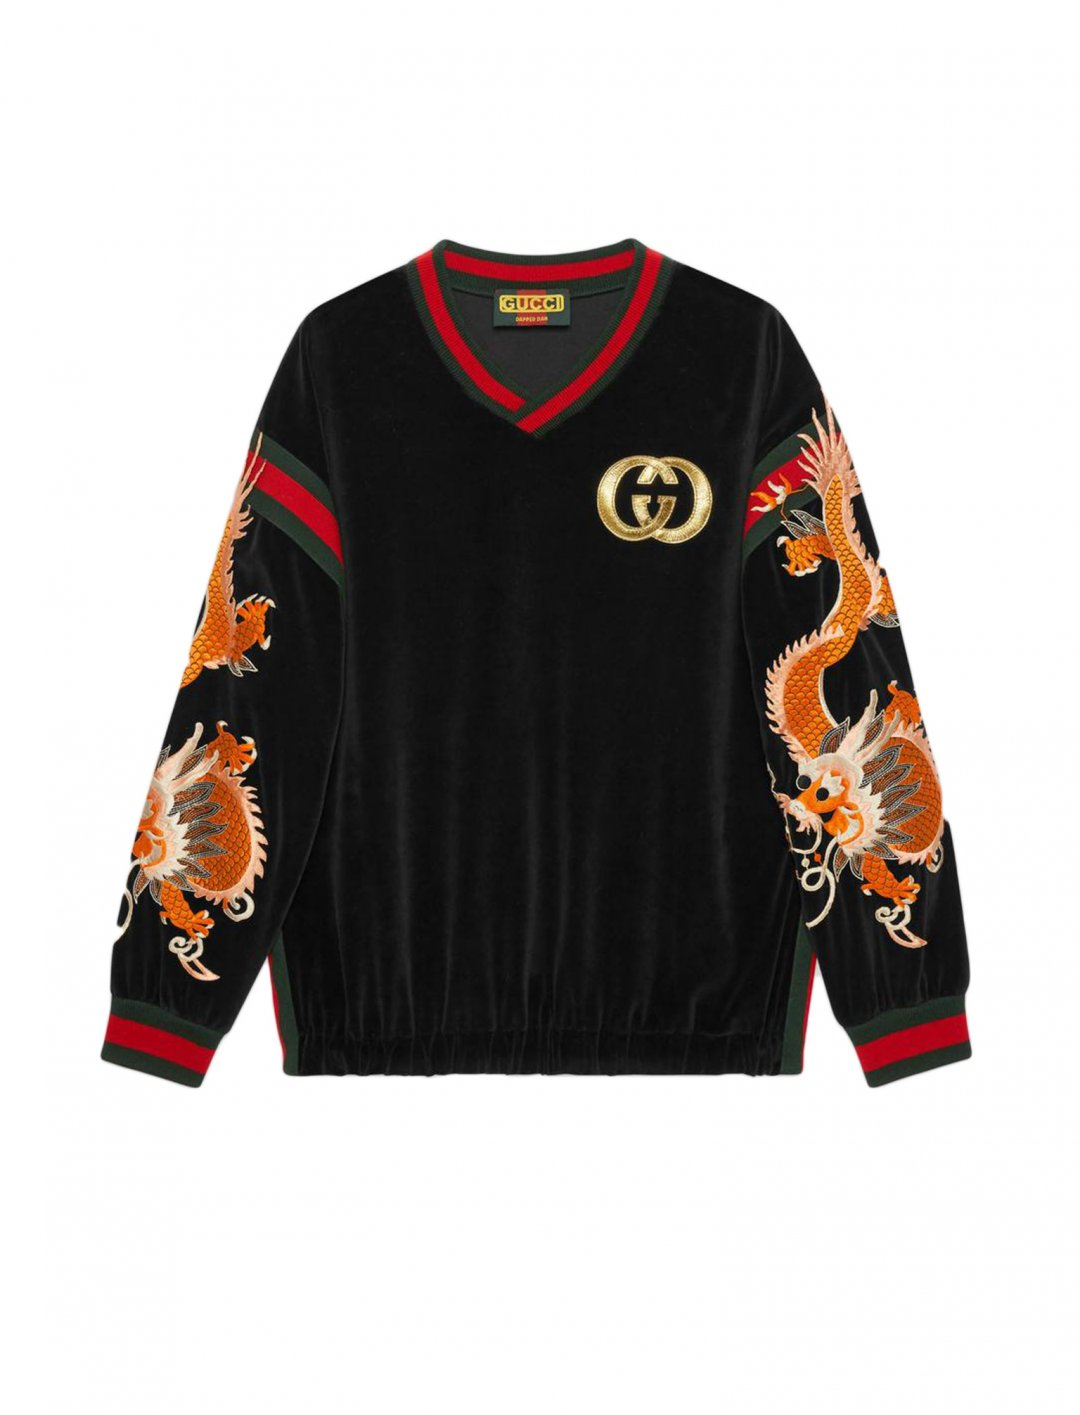 "French Montana's Sweatshirt {""id"":5,""product_section_id"":1,""name"":""Clothing"",""order"":5} Gucci-Dapper Dan"